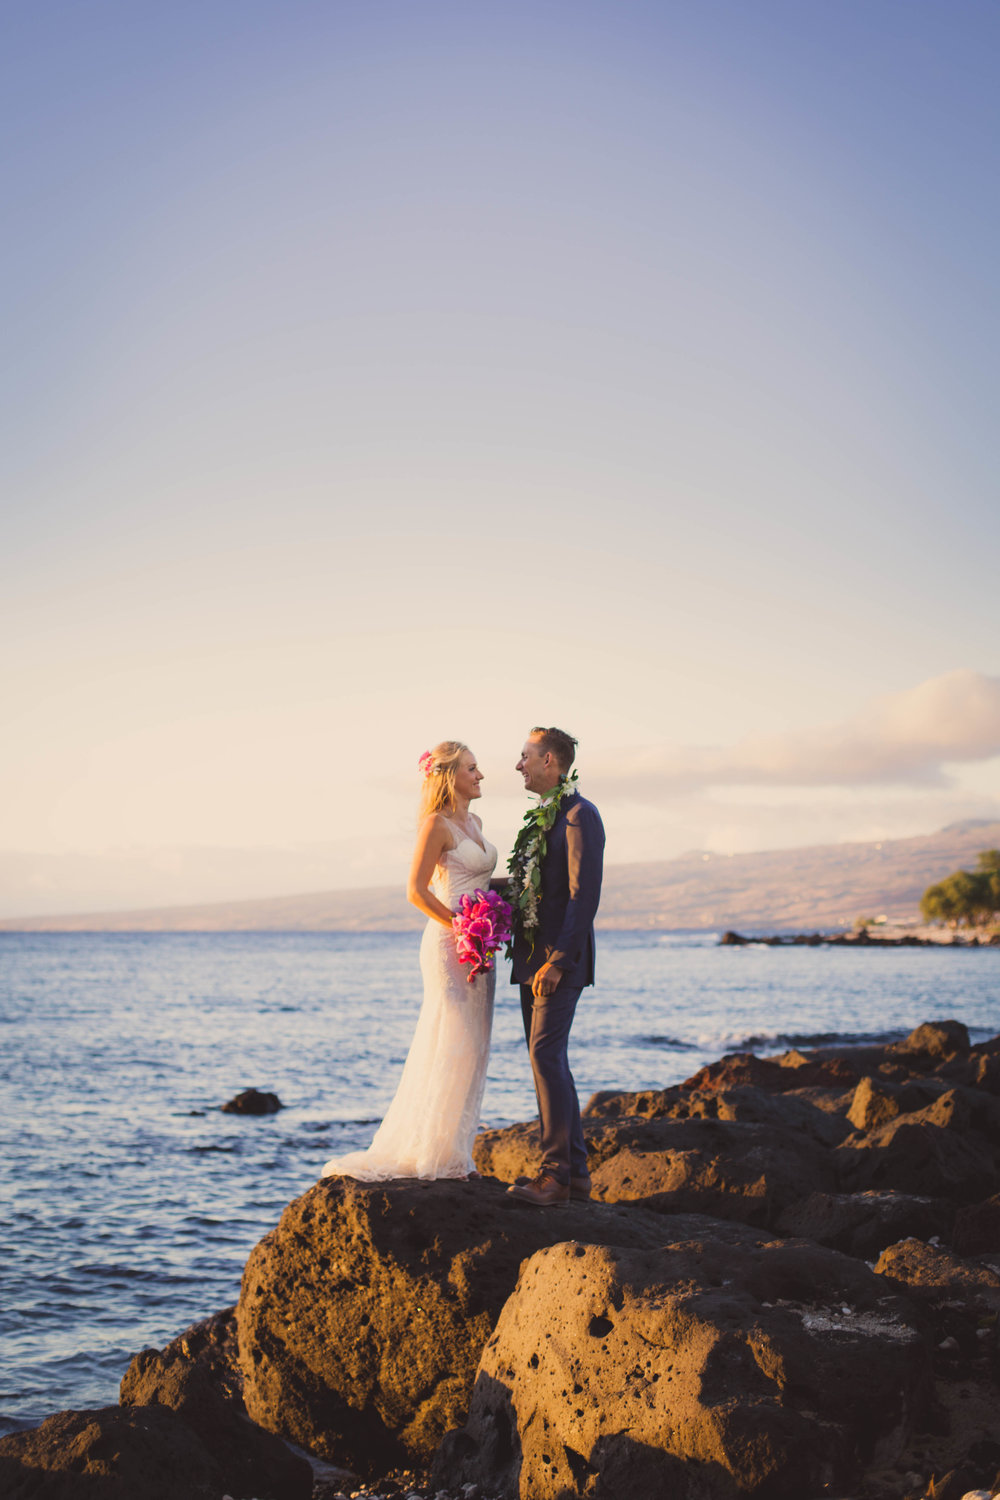 big island hawaii fairmont orchid beach wedding © kelilina photography 20170812184333-1.jpg